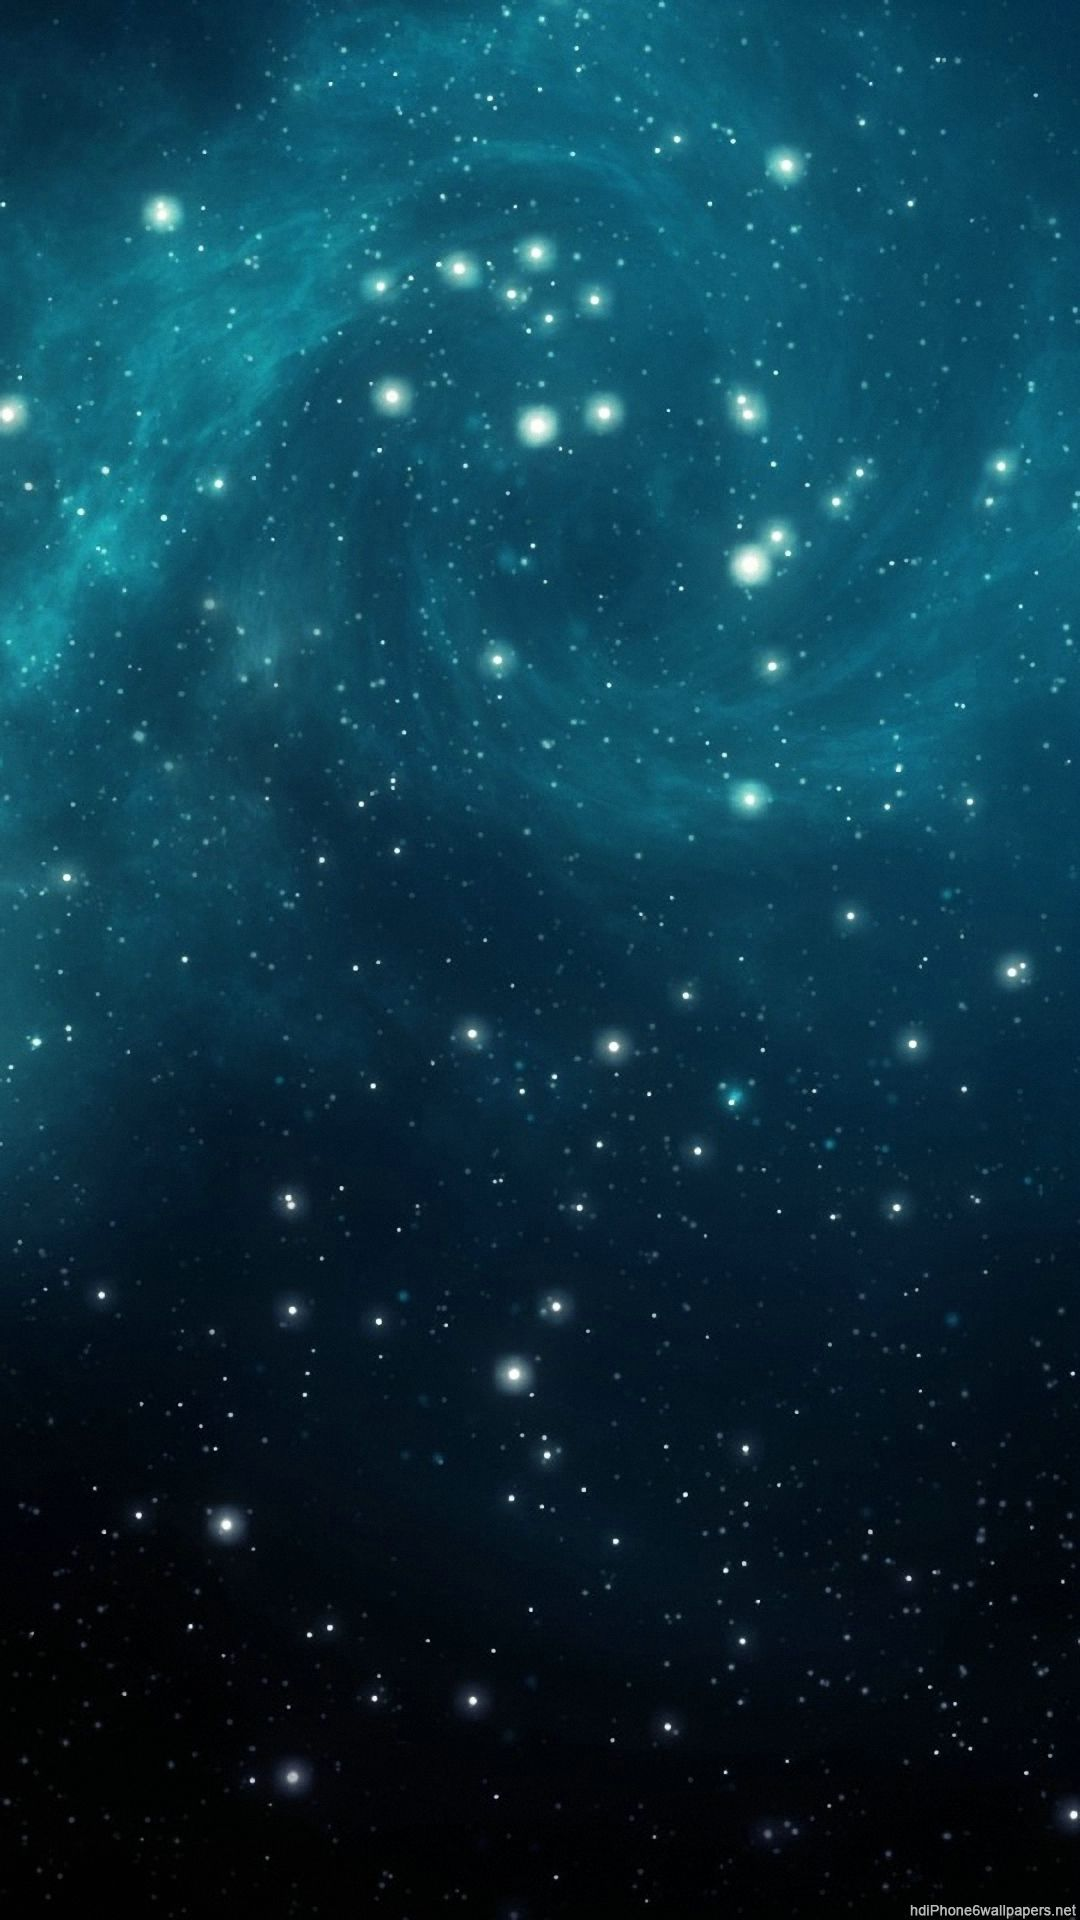 Space Iphone 6 Wallpapers Hd And Space 6 Plus Wallpapers 1080p Space Iphone Wallpaper Galaxy Wallpaper Iphone Star Wallpaper